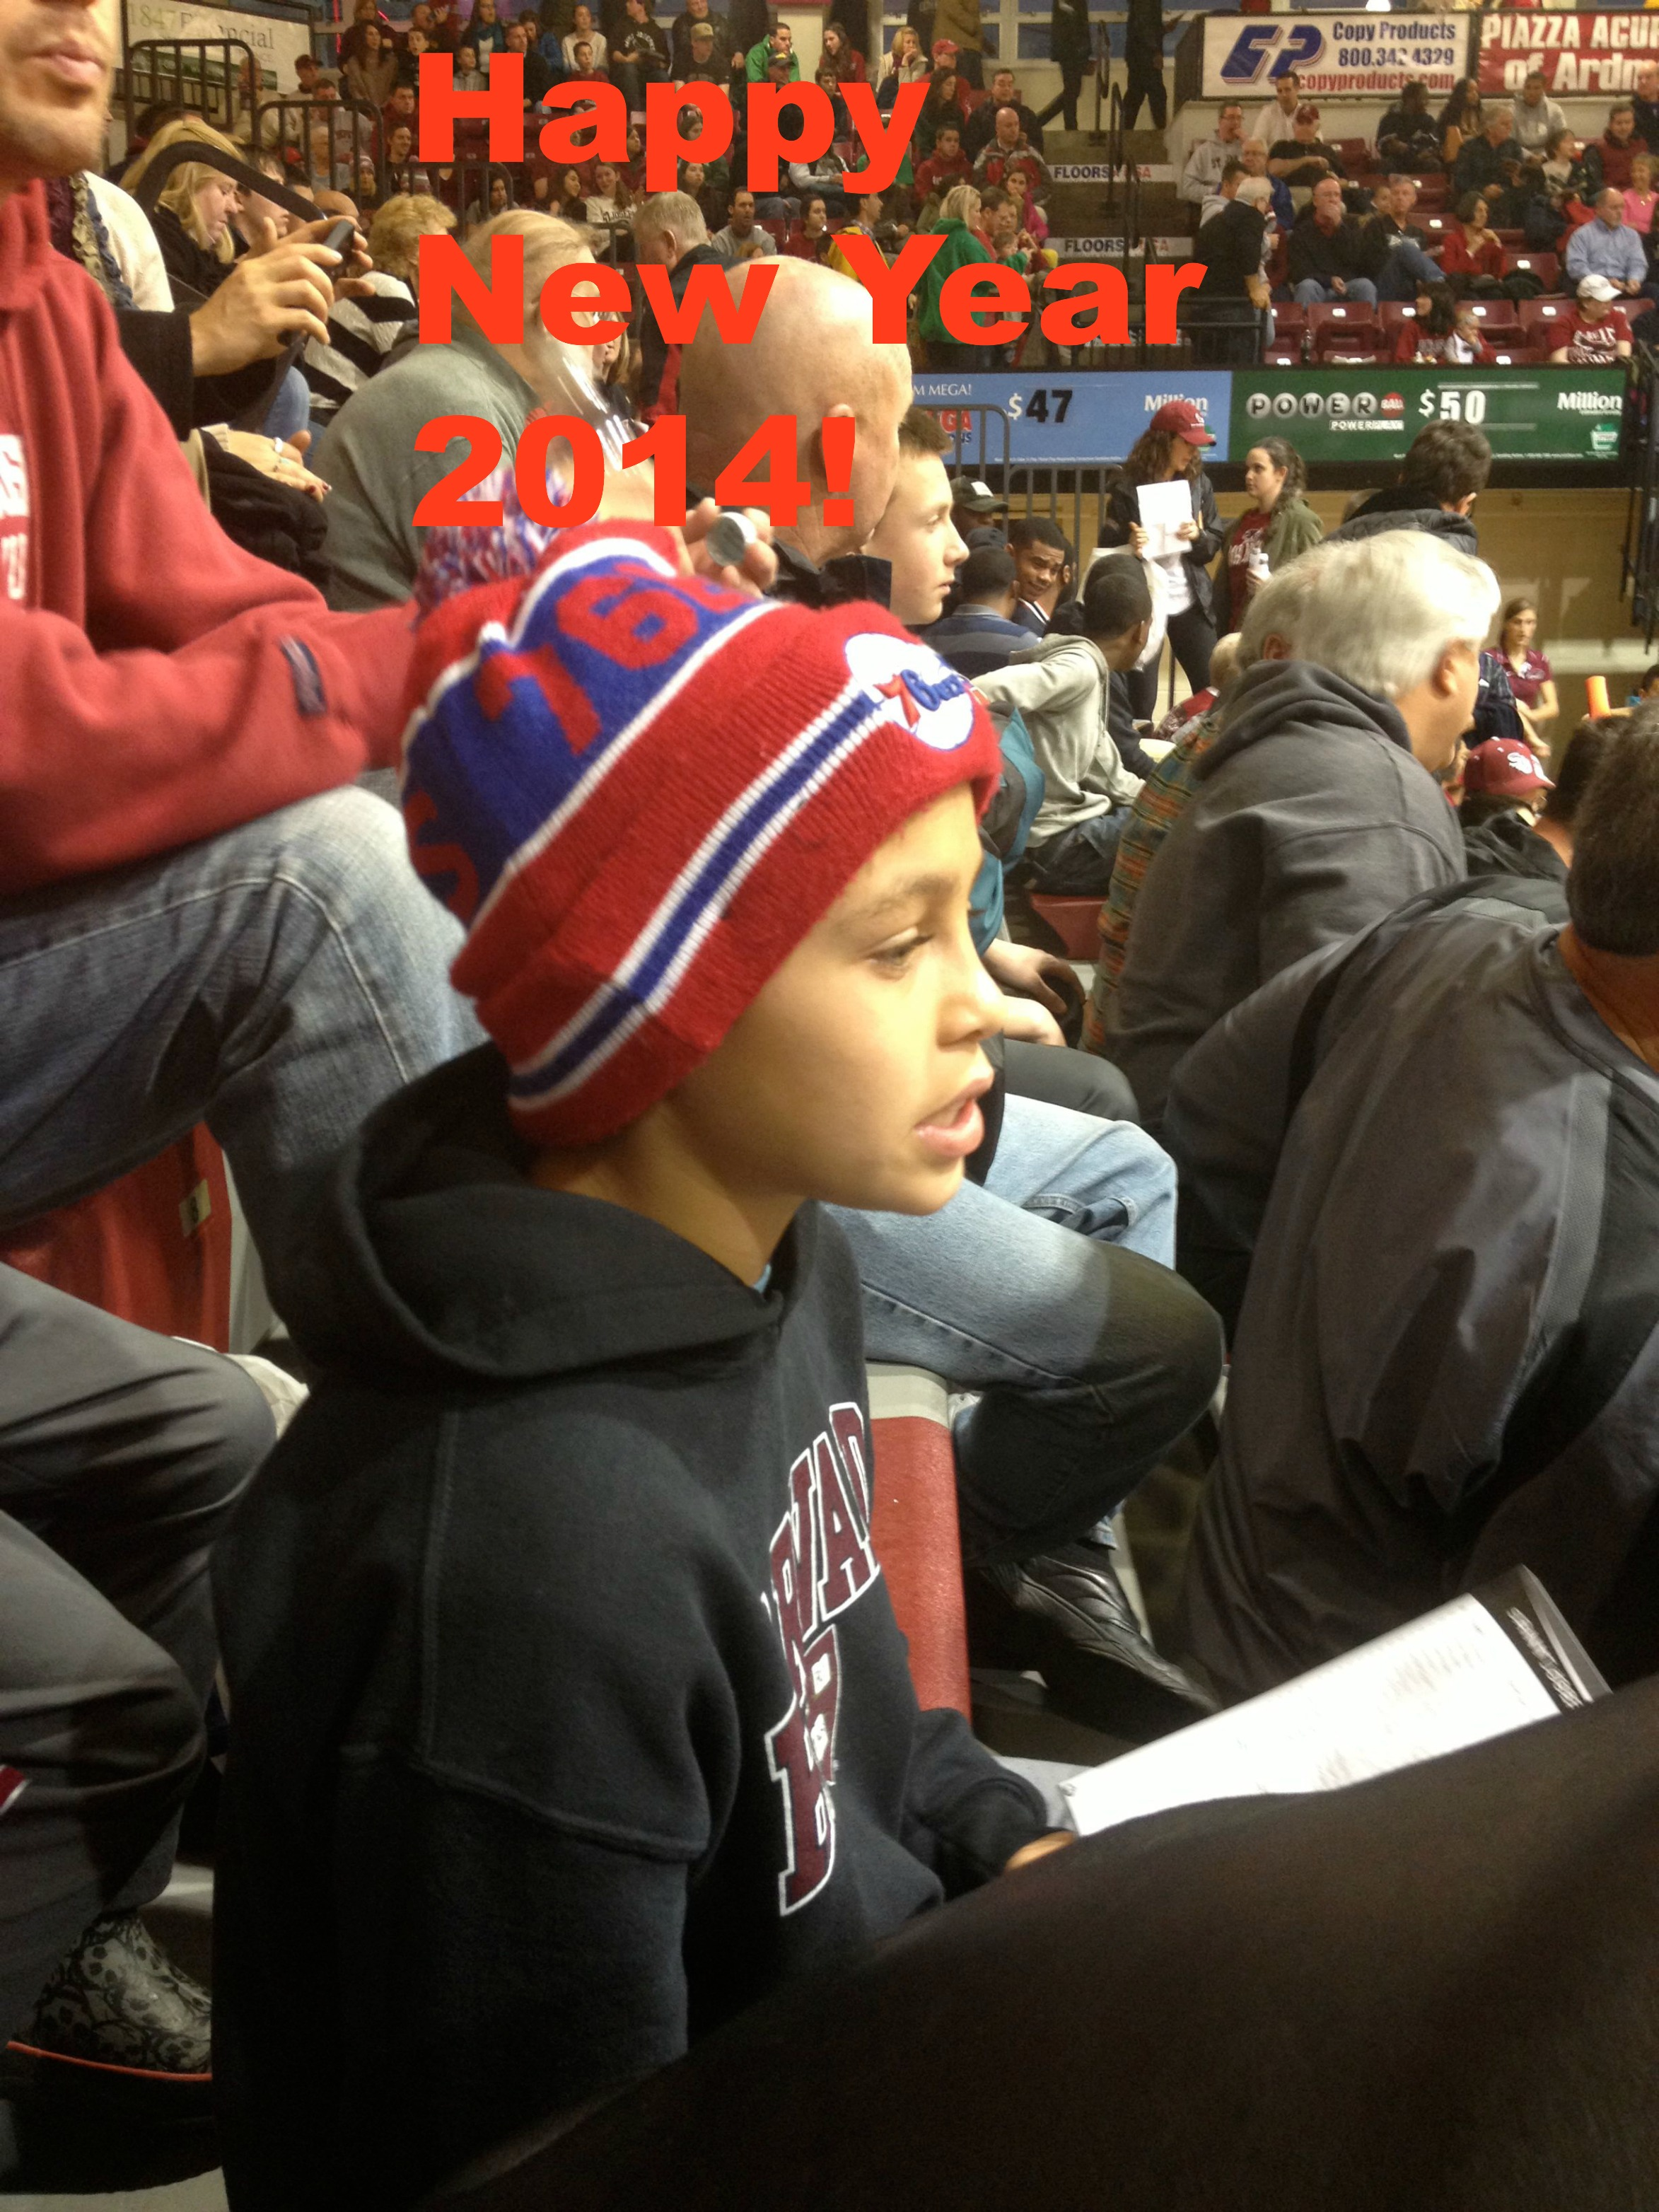 My son at St. Josephs v. Boston U. basketball game